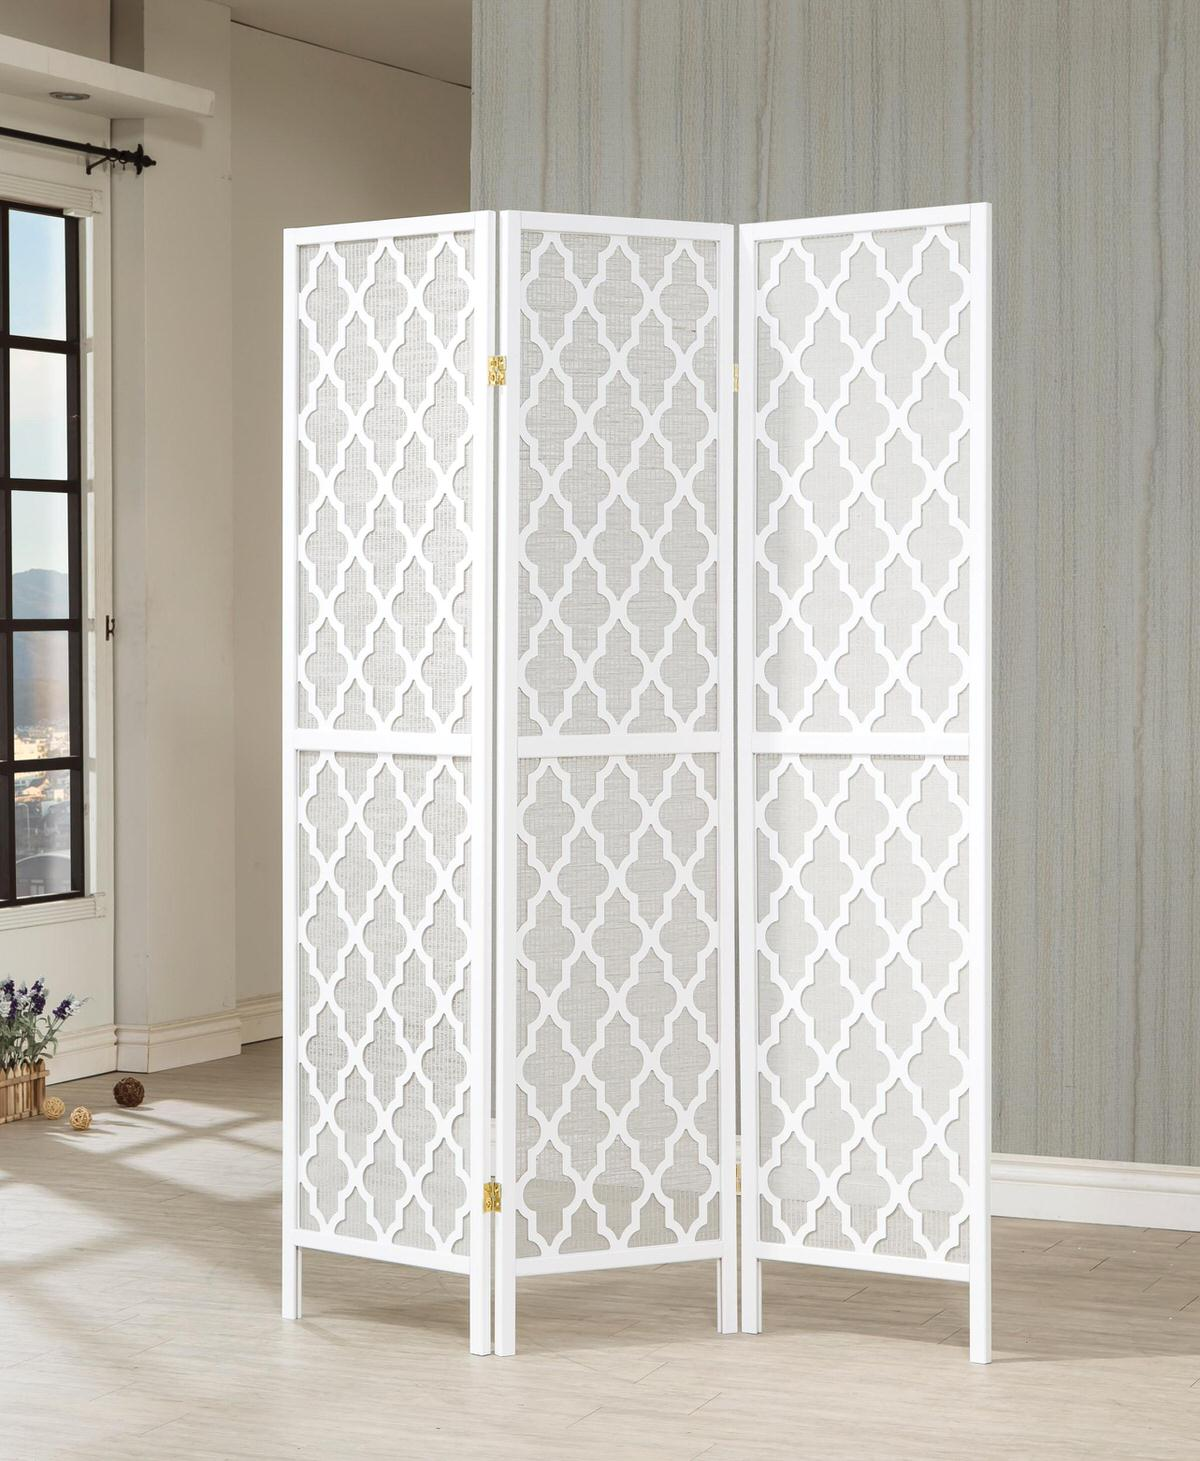 Room Divider Screens 901908 3 Panel Room Divider By Coaster